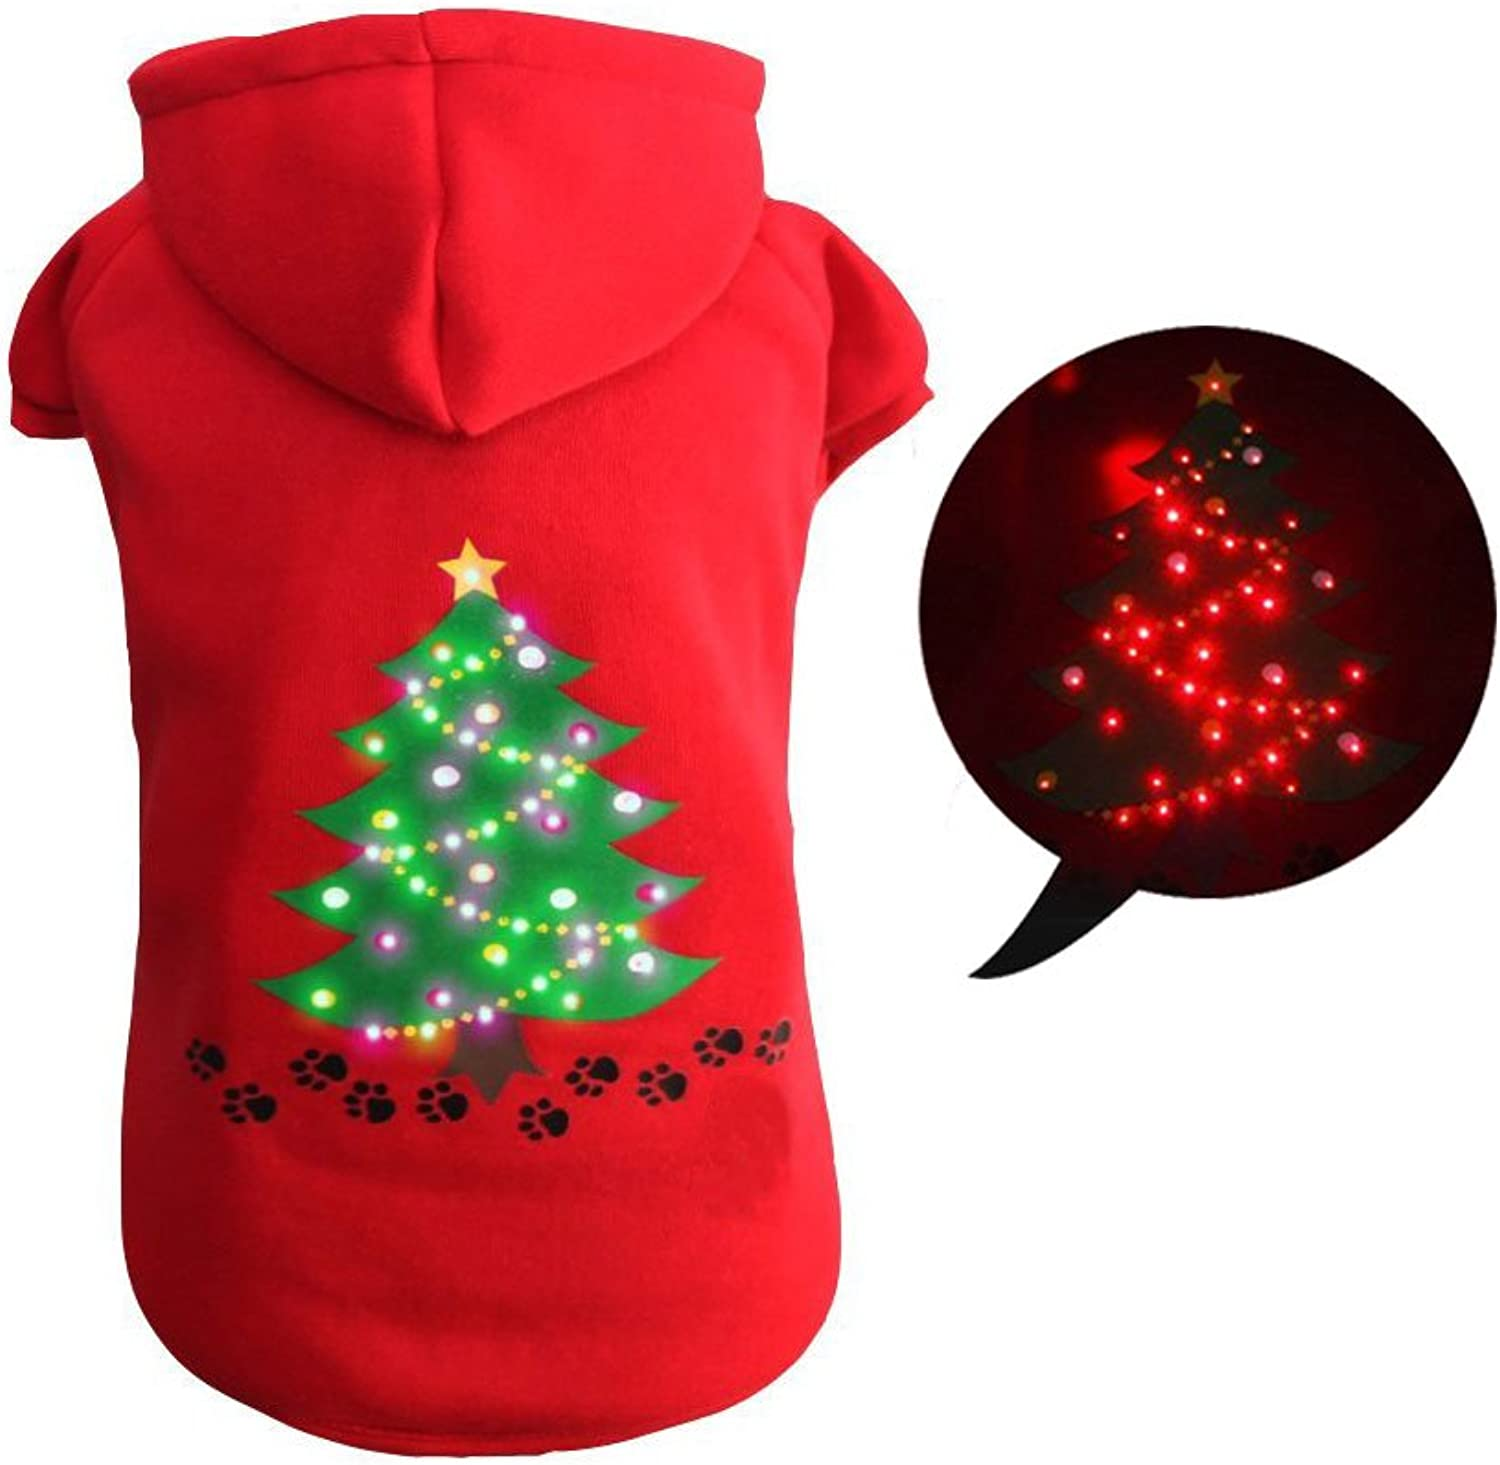 Royalwise Christmas Dog Outfit Lighted up Pet Shirt Dog Costume Puppy Pet Hoodie Clothes LED Holiday Doggie Sweater (M, Red)